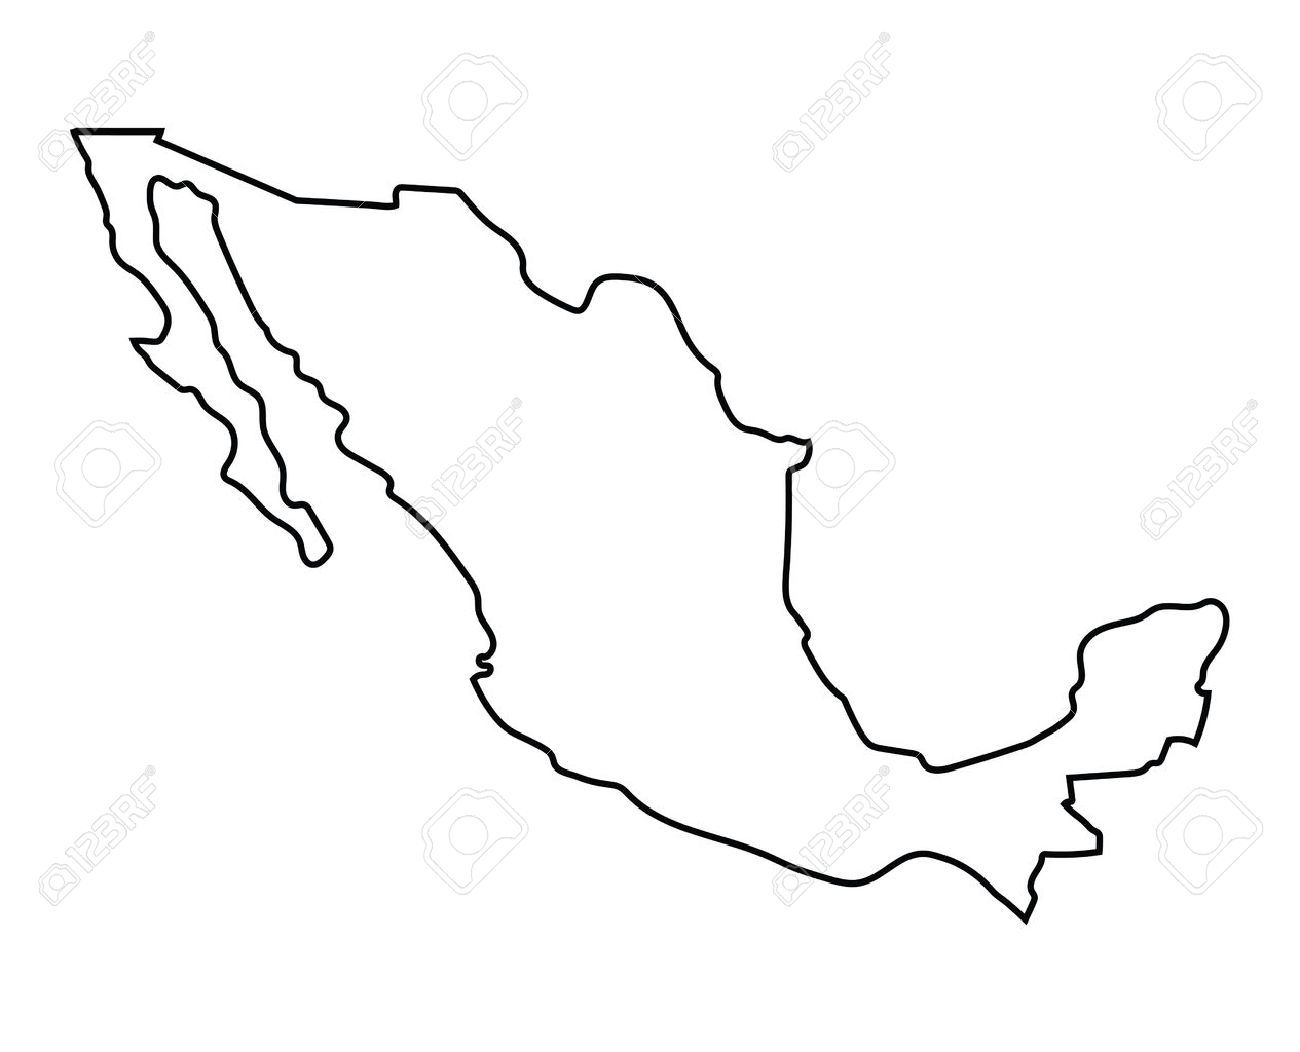 Outline Of Mexico Map Royalty Free Cliparts, Vectors, And Stock